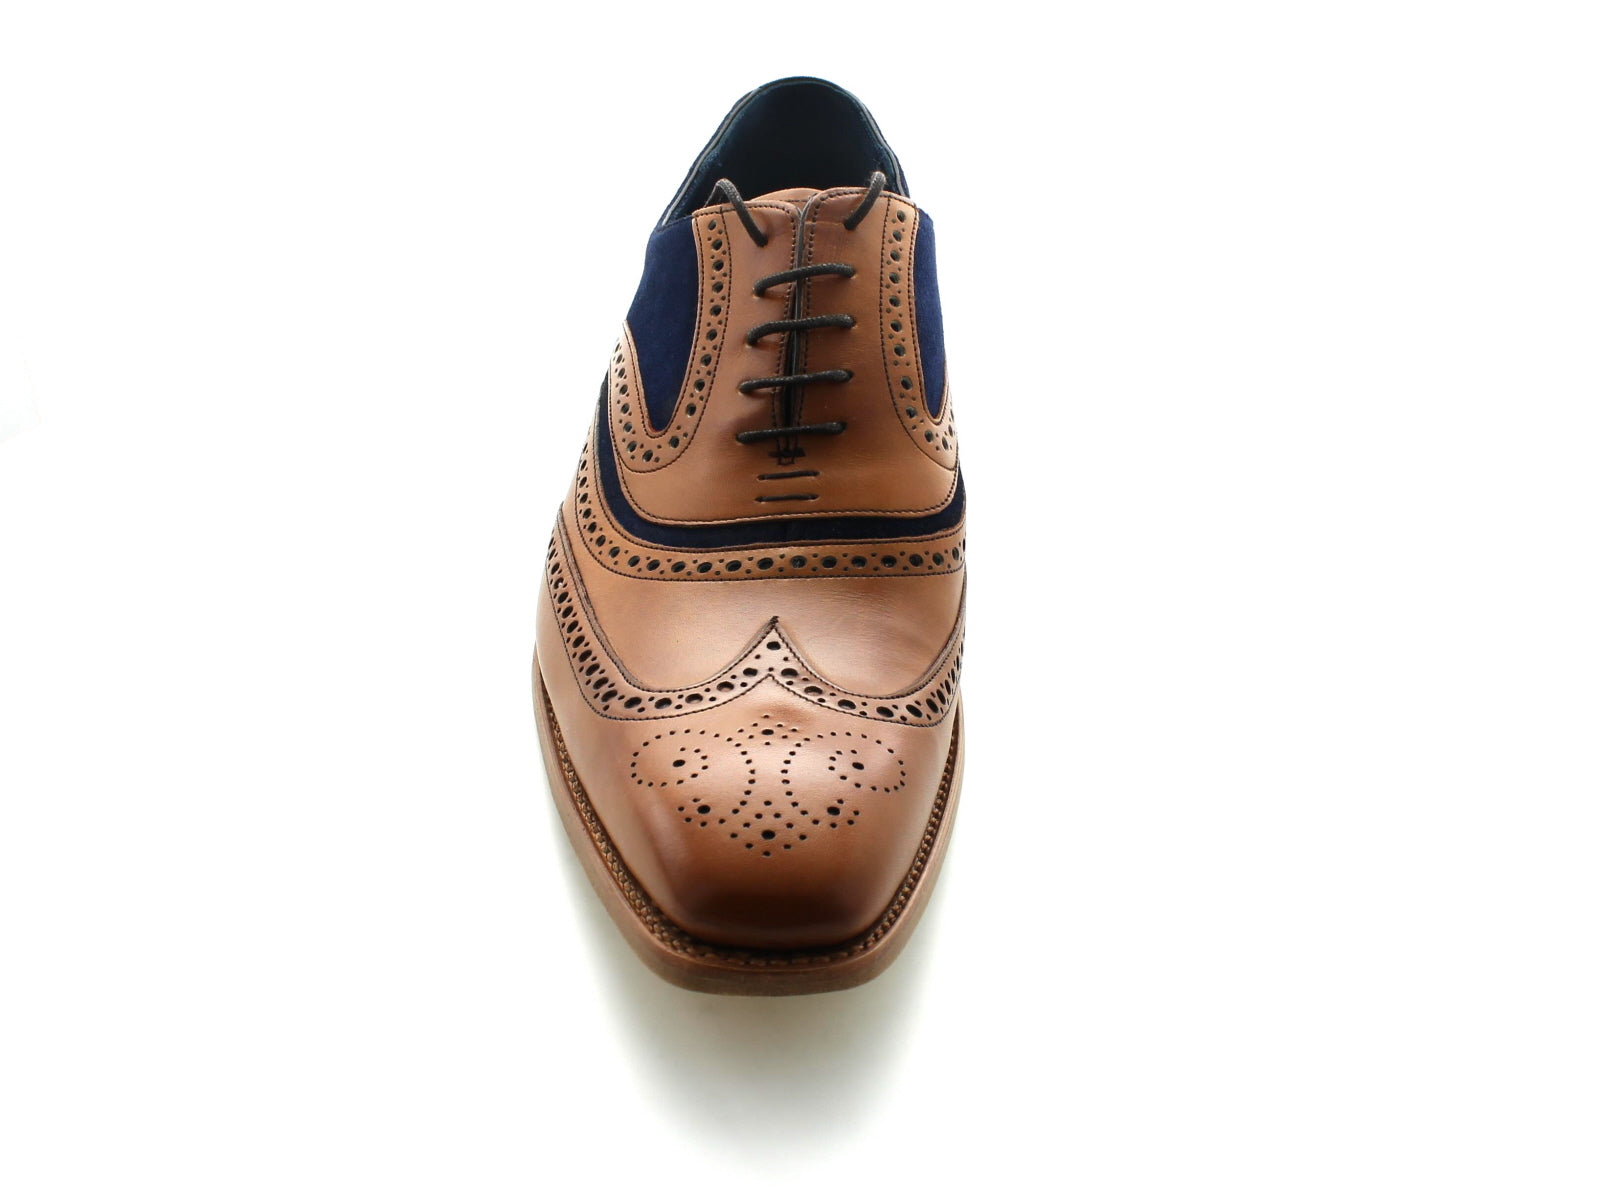 Barker Mc Clean in Cedar Calf and Navy Suede front view